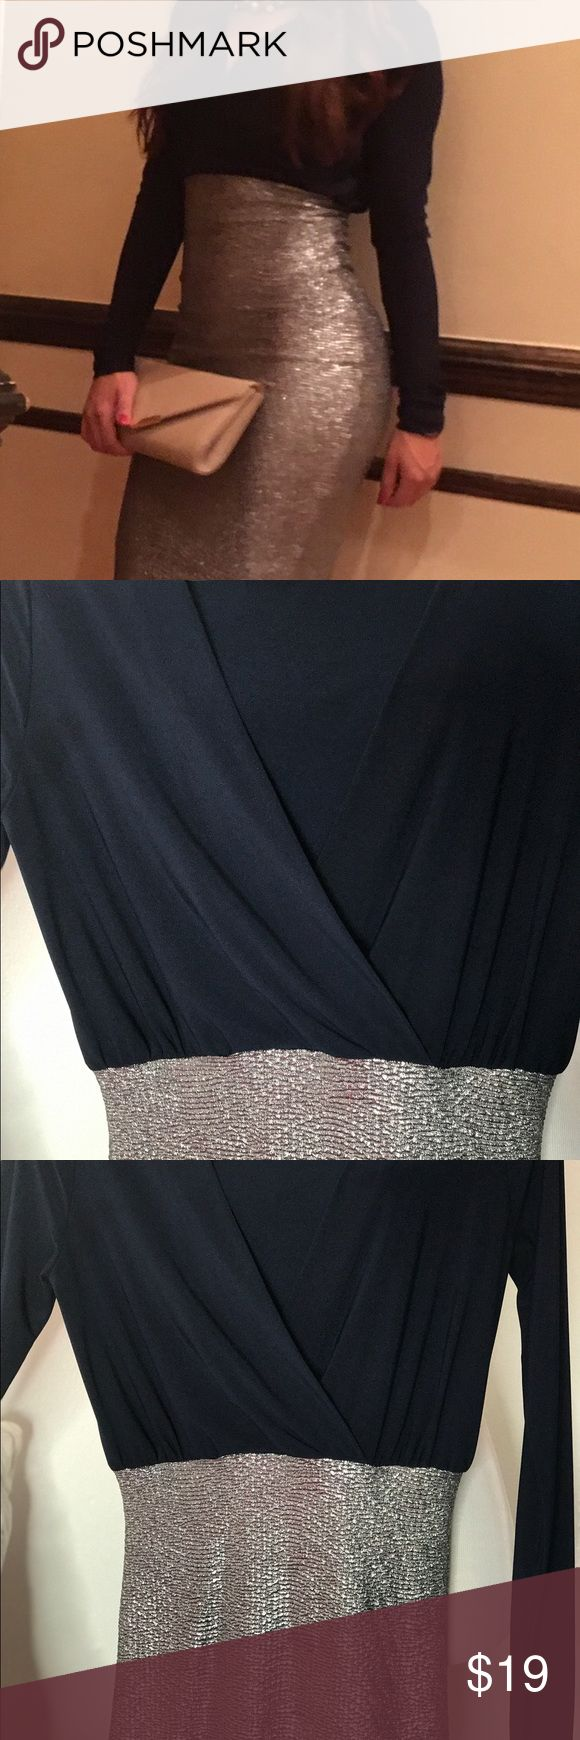 Form fitting long sleeve dress This form fitting navy and silver dress is perfect for a night out on town or a wedding event. It can be paired with a beautiful necklace and some fancy heels. It is a bodycon dress with slip dress underneath for extra coverage. Charlotte Russe Dresses Long Sleeve